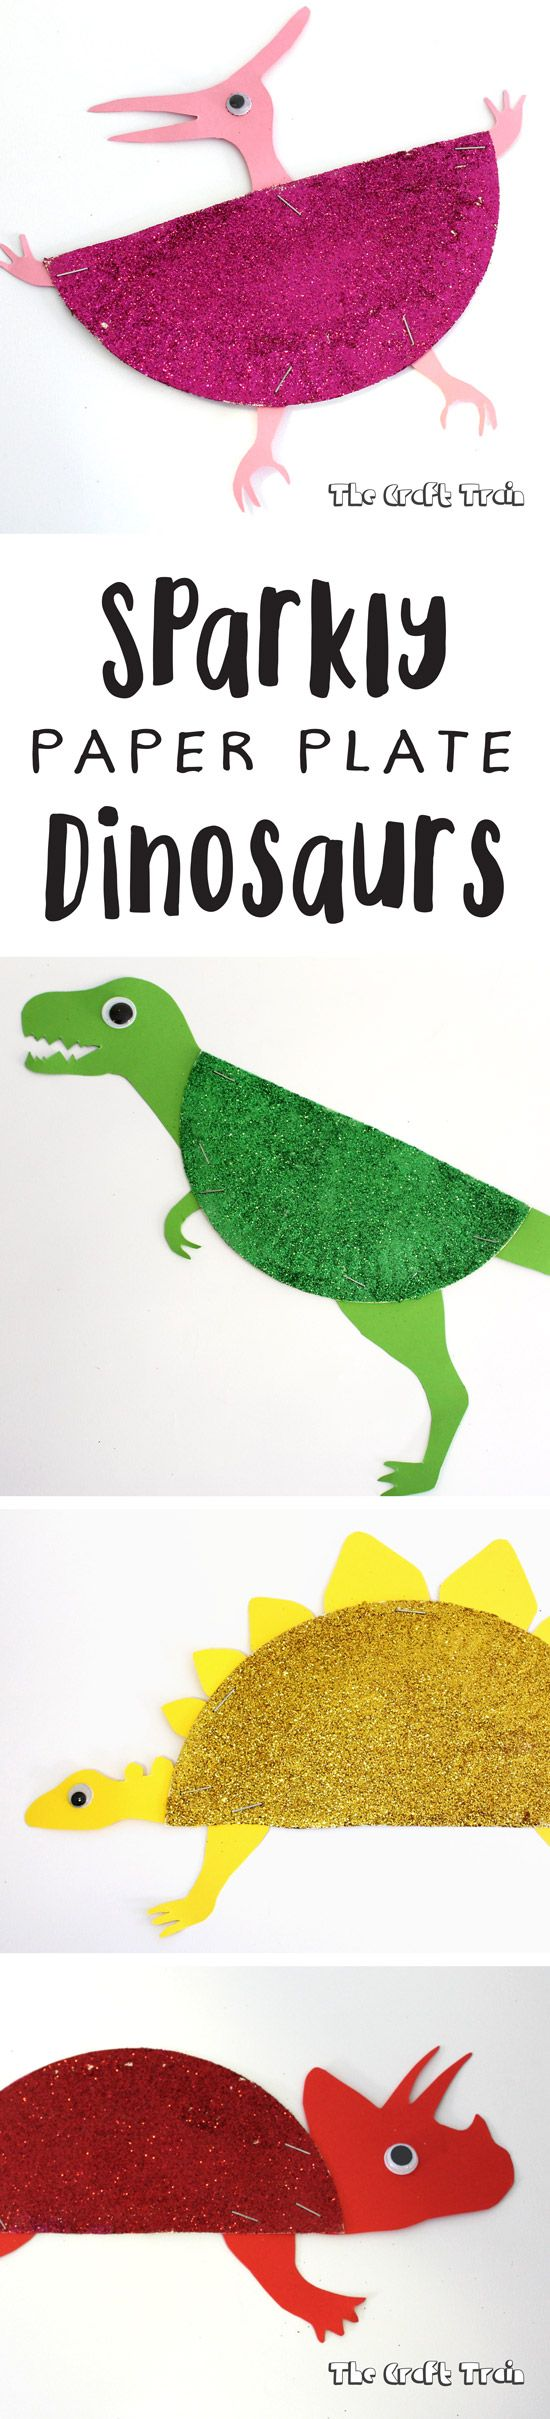 sparkly paper plate dinosaurs dinosaur crafts free printable